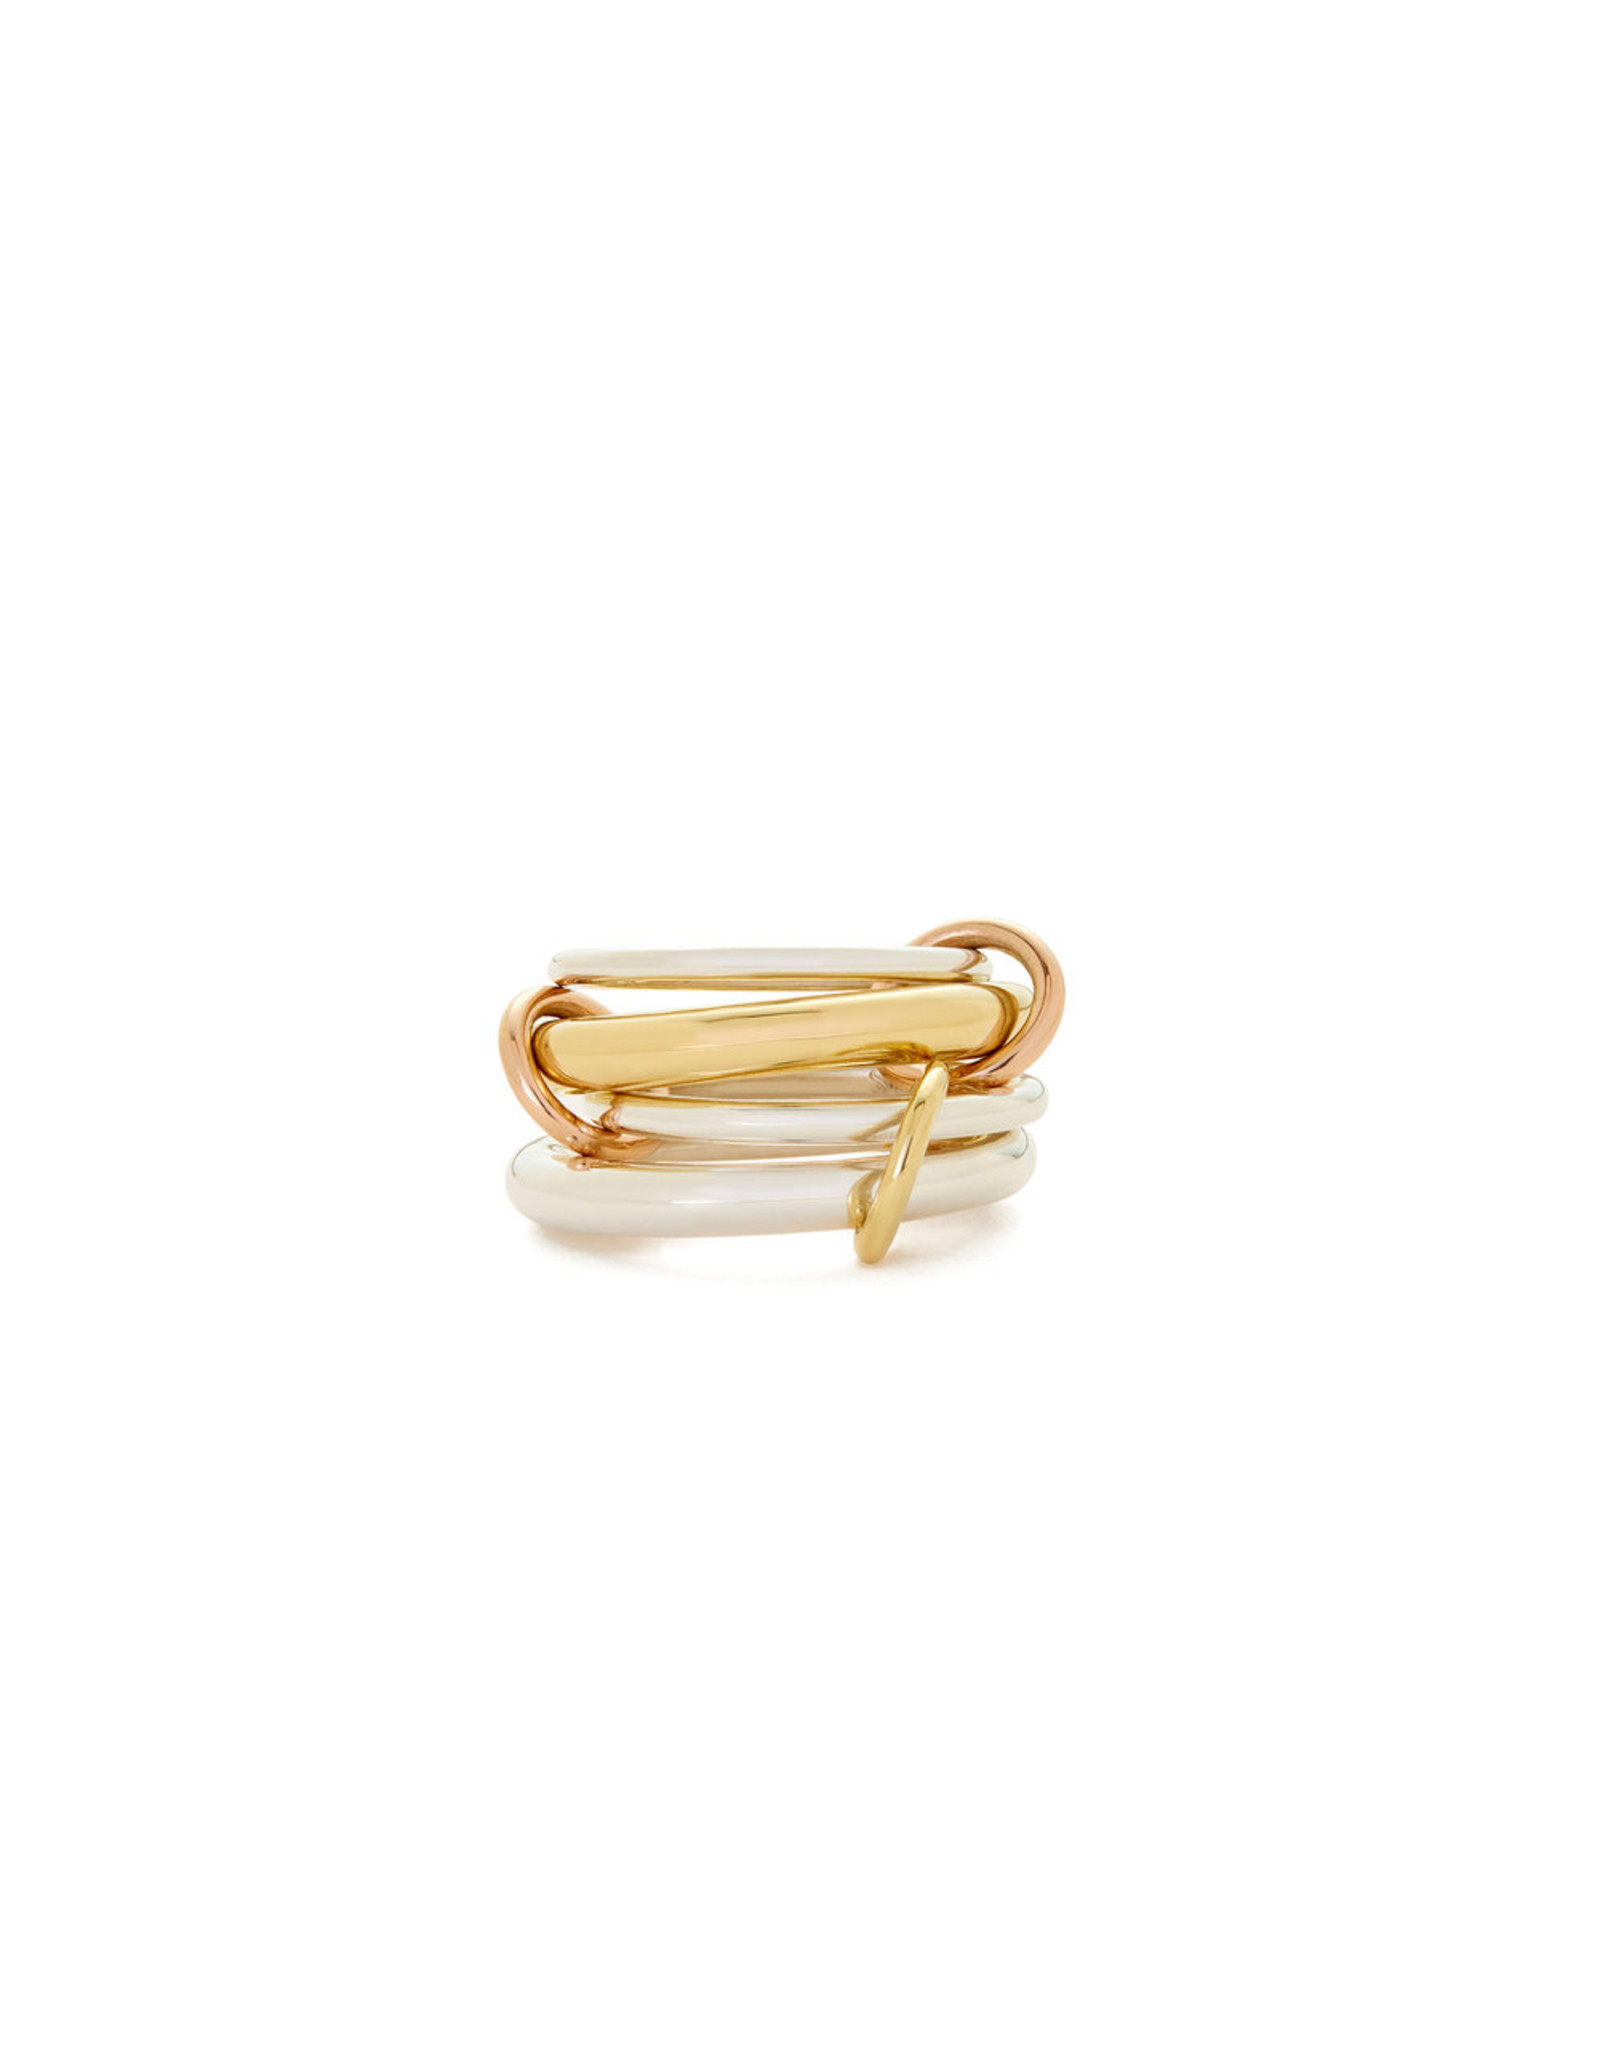 Spinelli Kilcollin Spinelli Kilcollin Cici Ring (Color: Yellow Gold / Rose Gold, Size: 6.5)